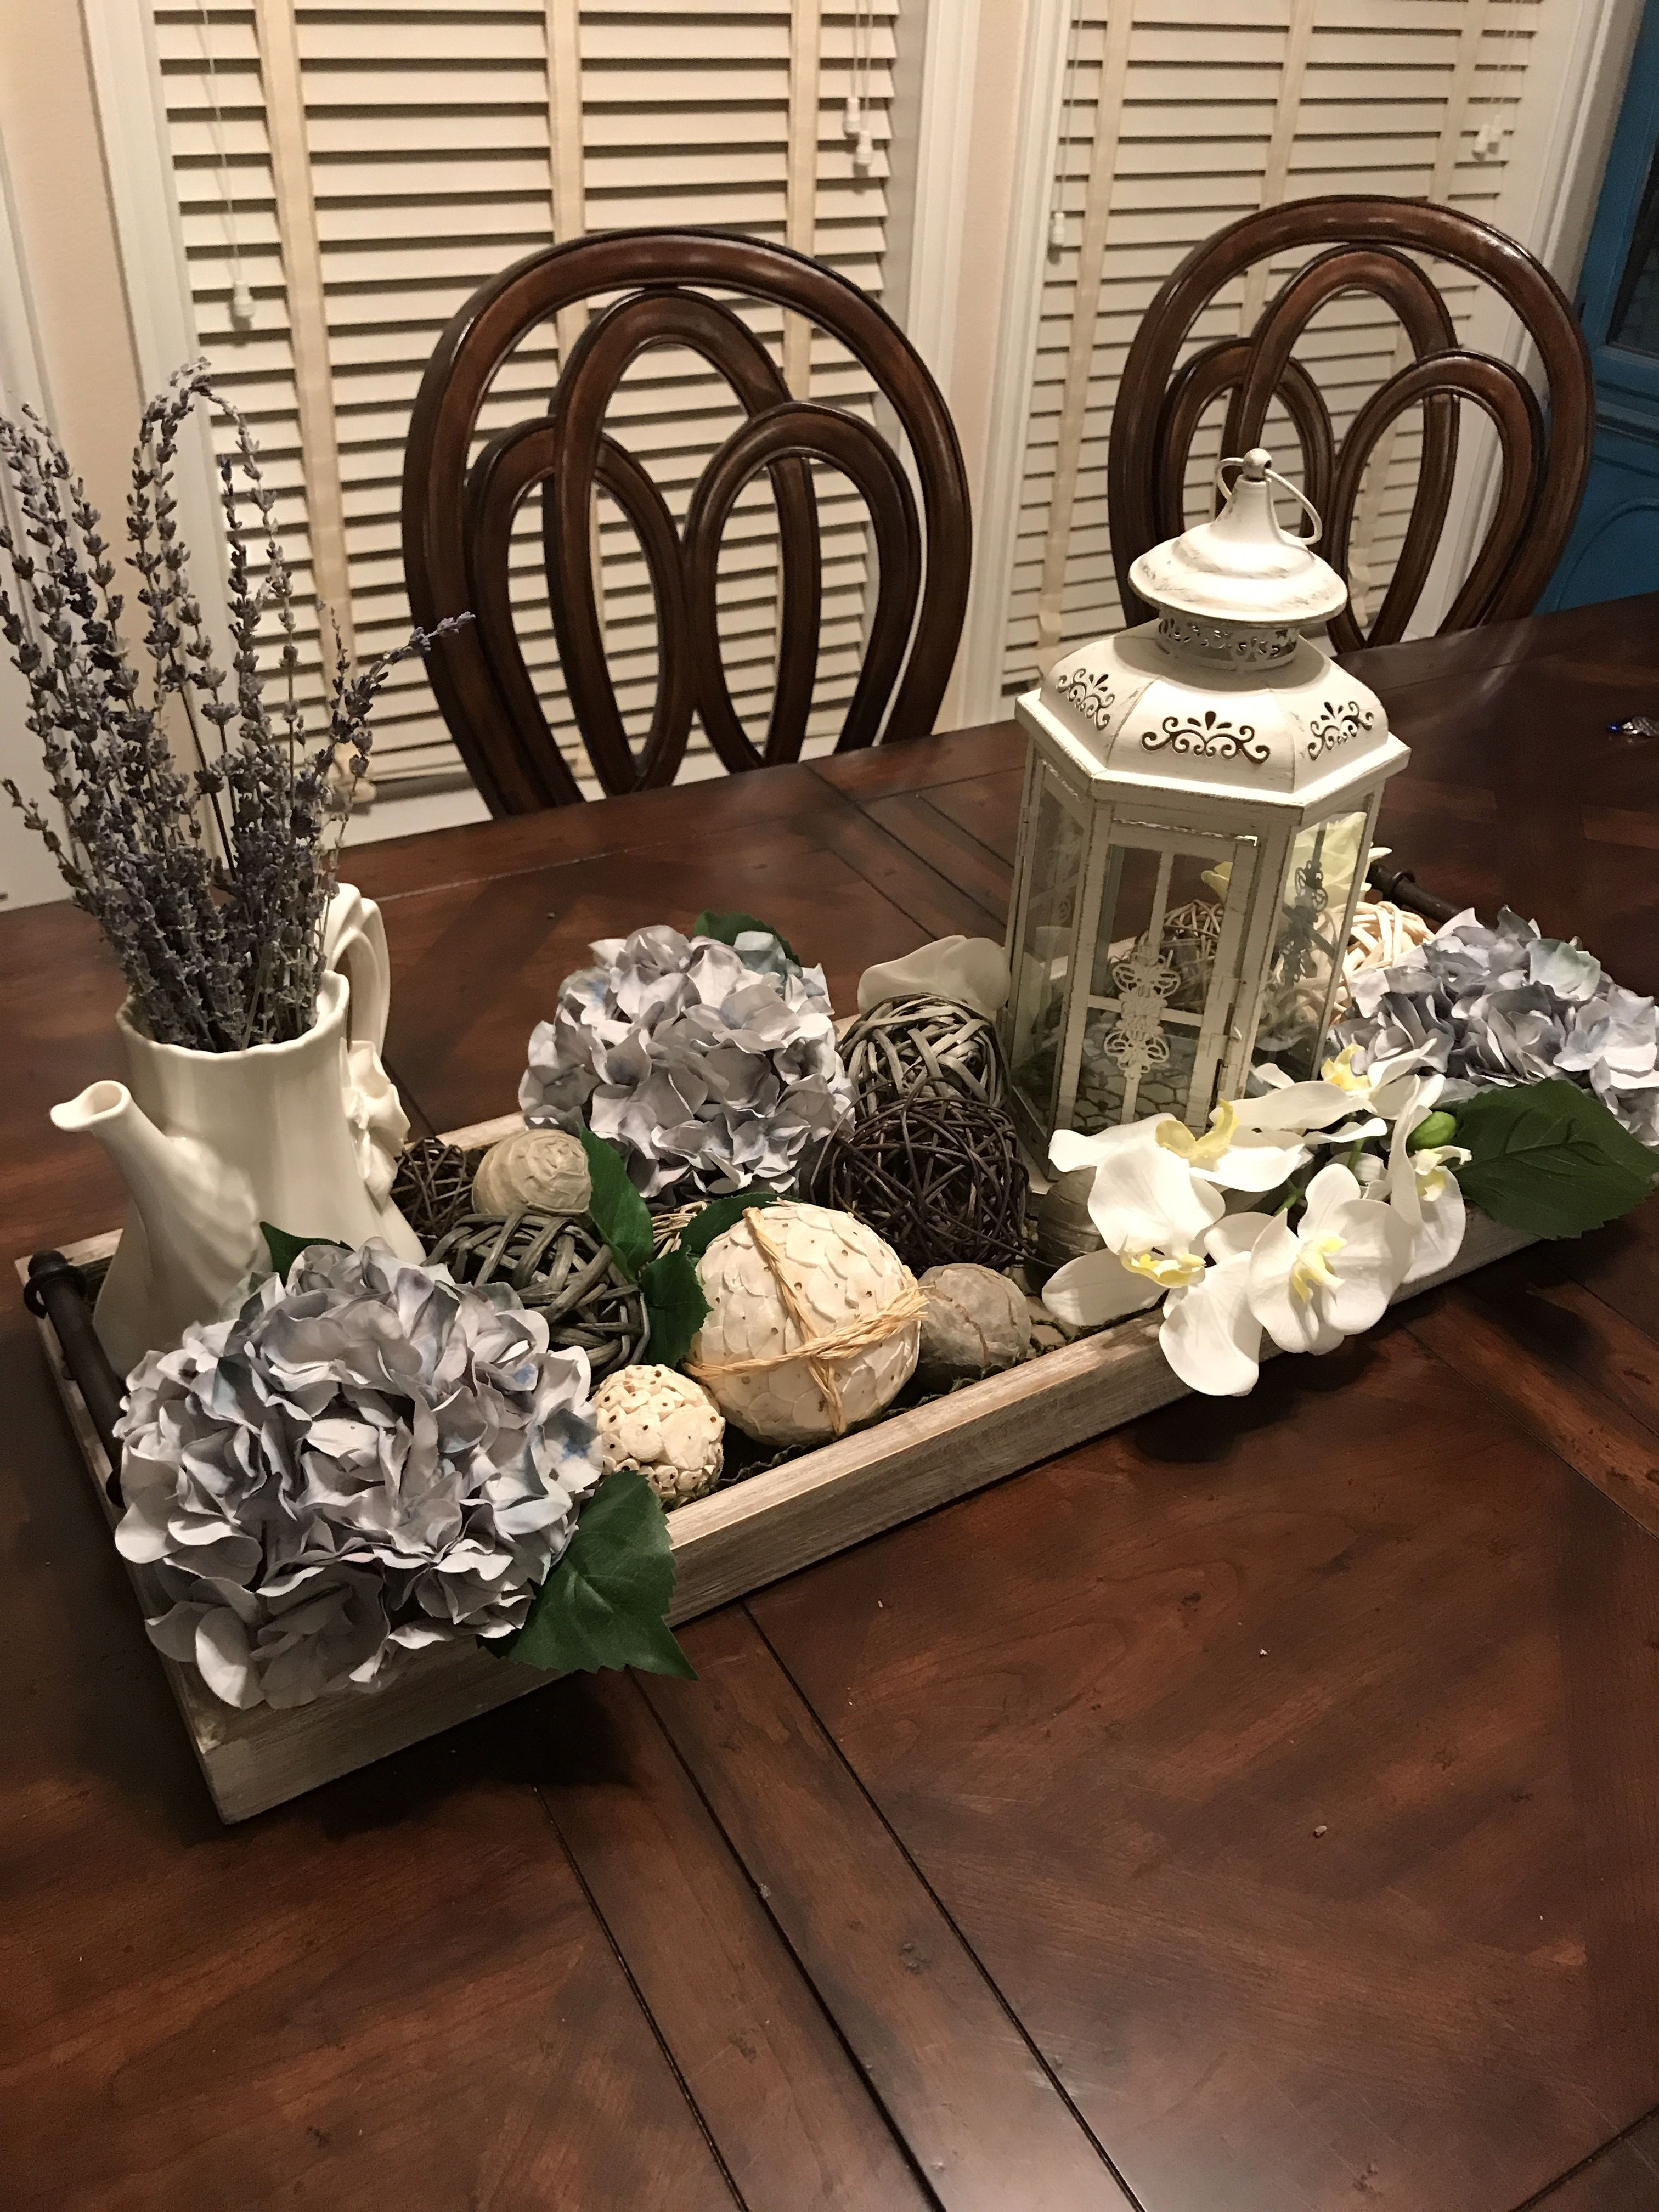 Dining Table Center Piece Turned Out Beautifully Purple Hydrangeas Lavender Table Centerpieces For Home Dinning Table Decor Dining Table Decor Centerpiece